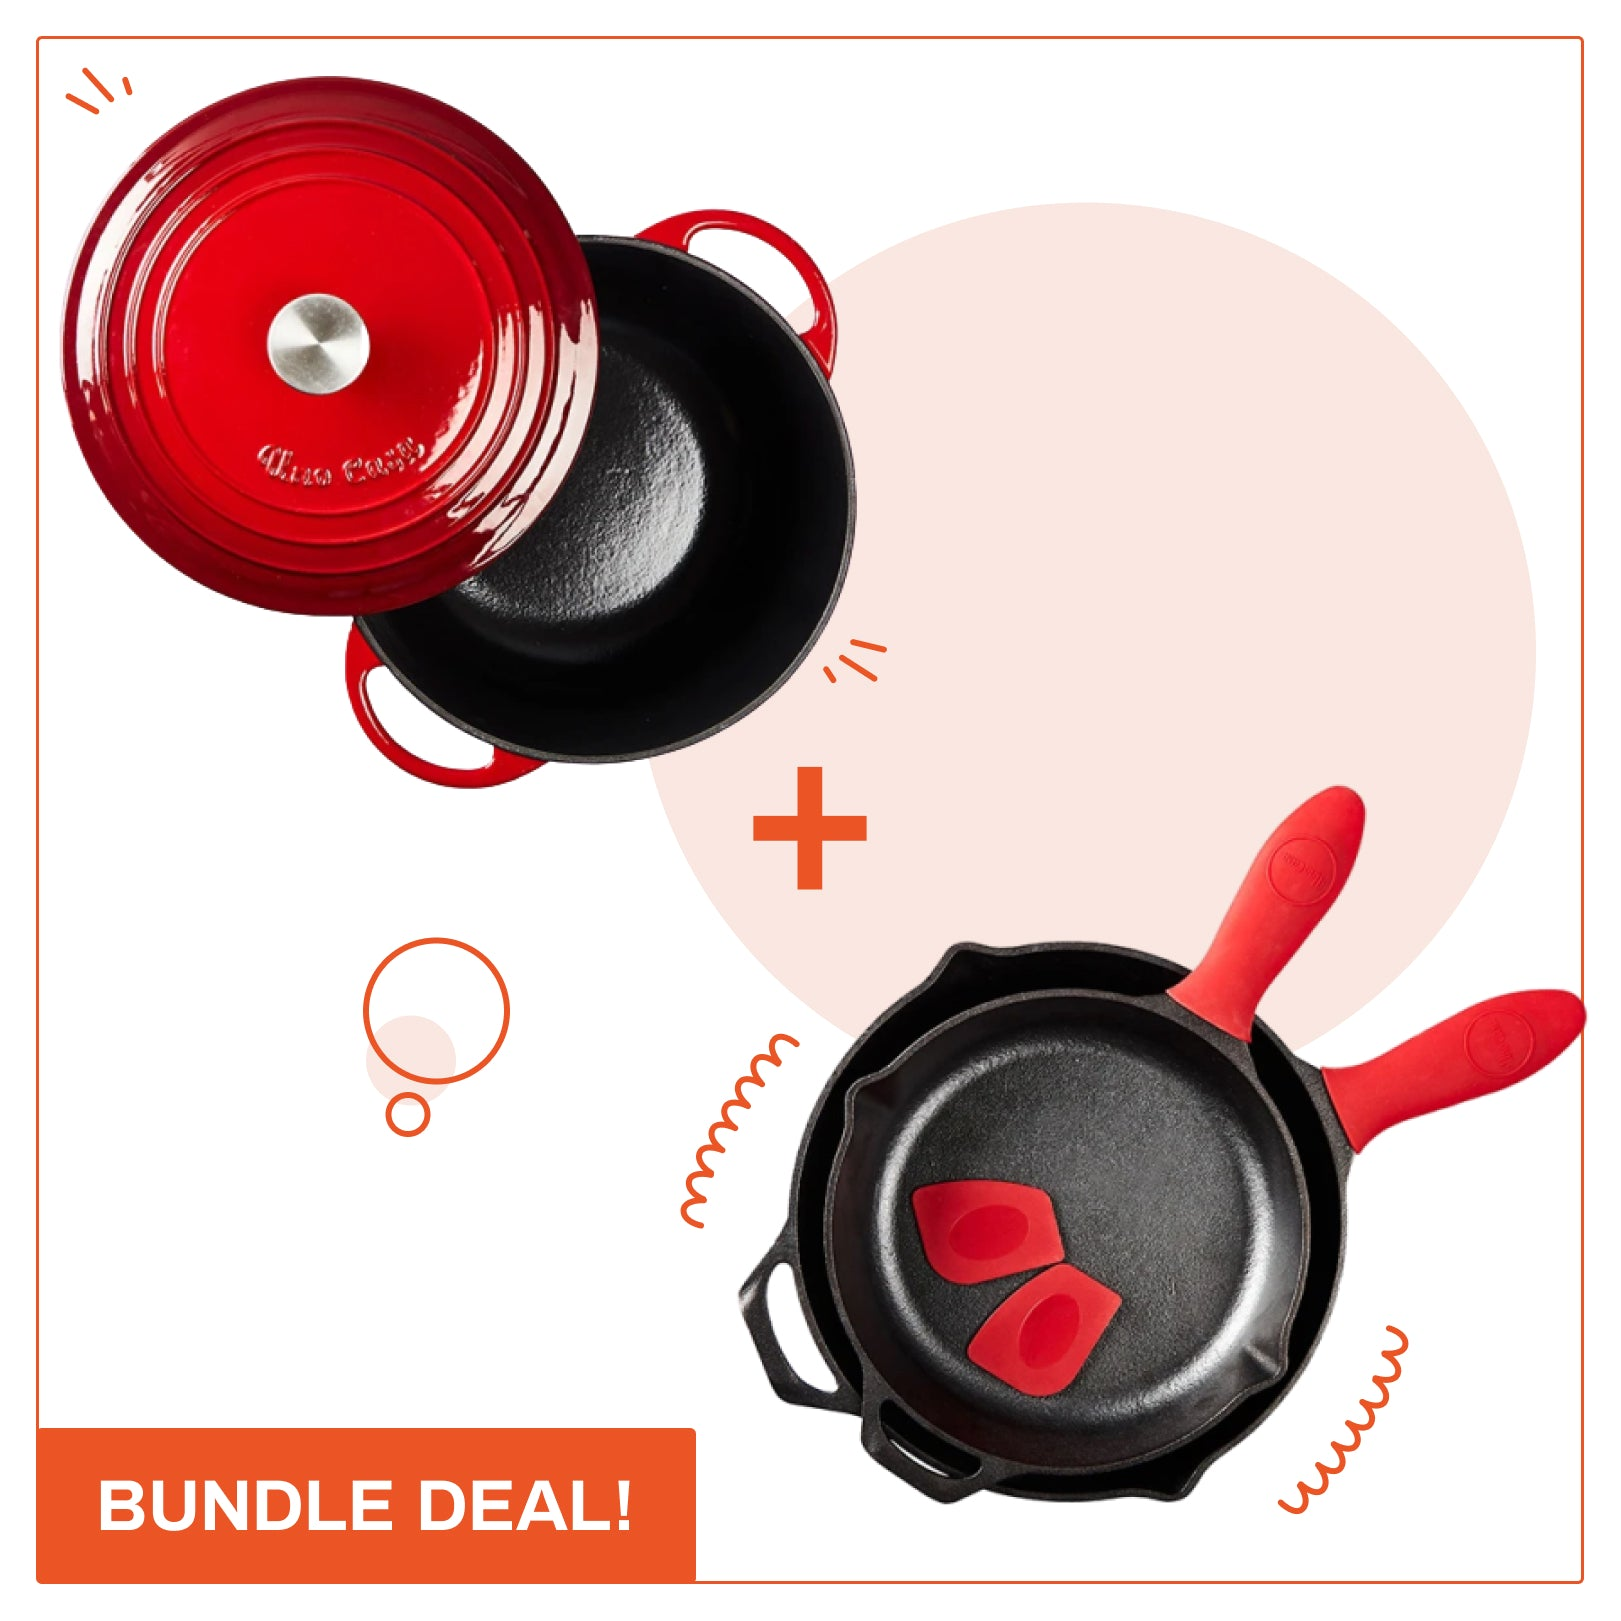 Skillet set and enameled dutch oven bundle